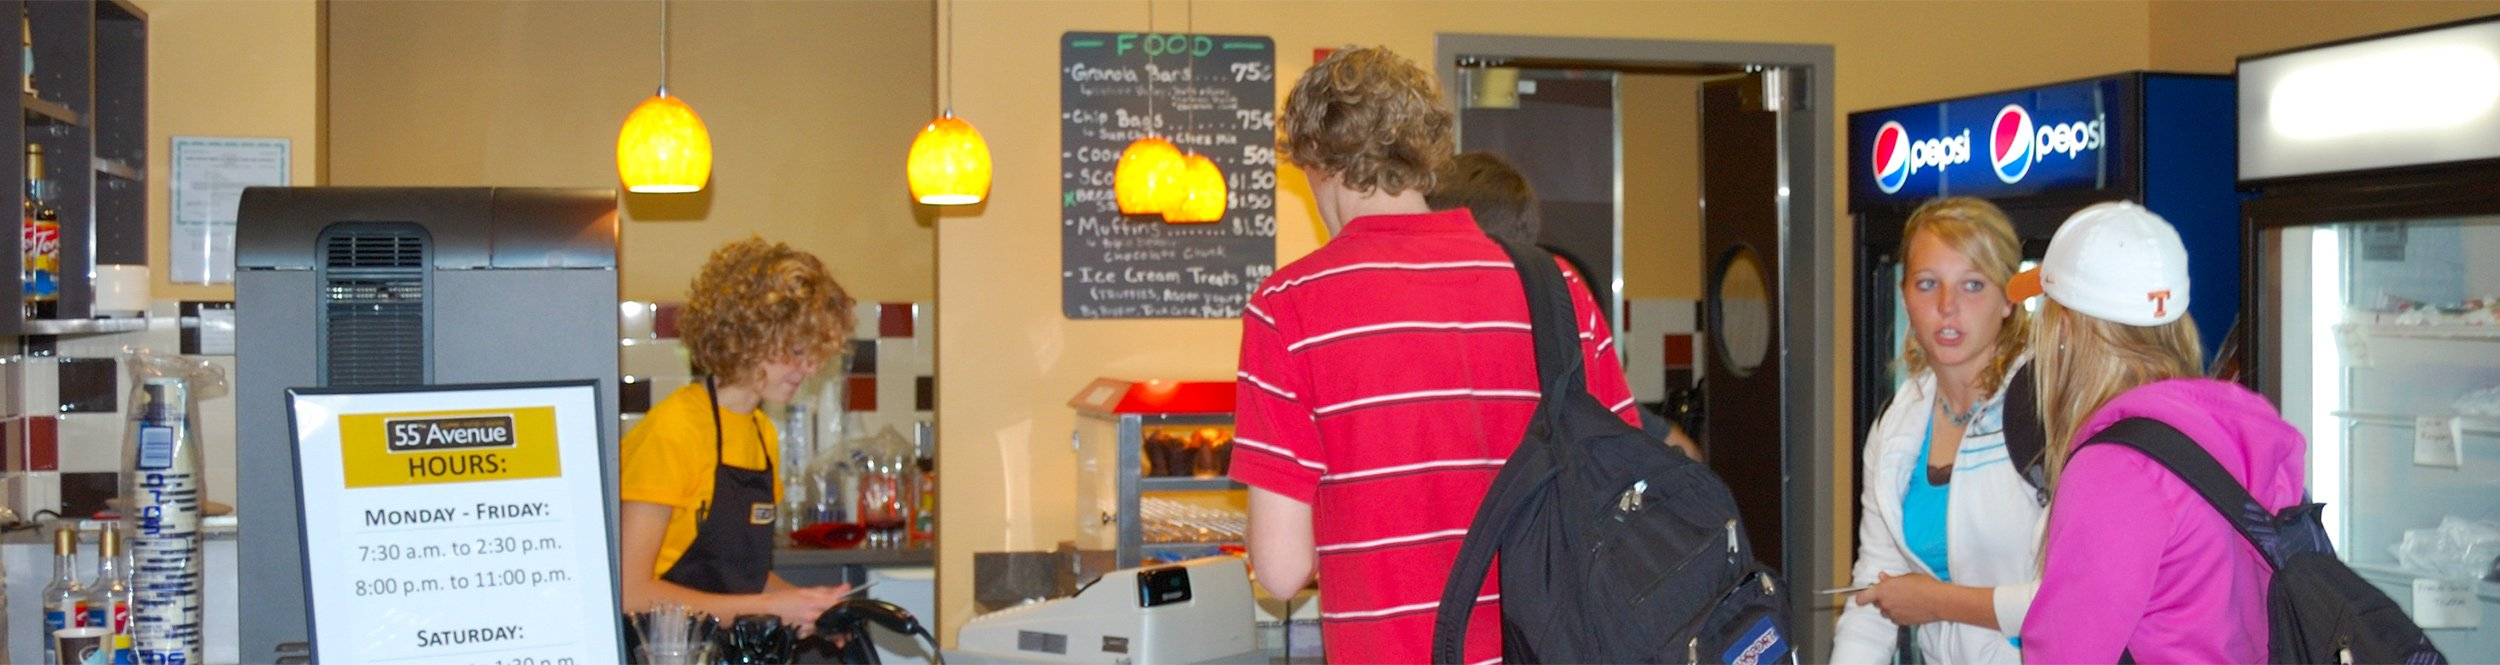 Students stand in line at a cafe.